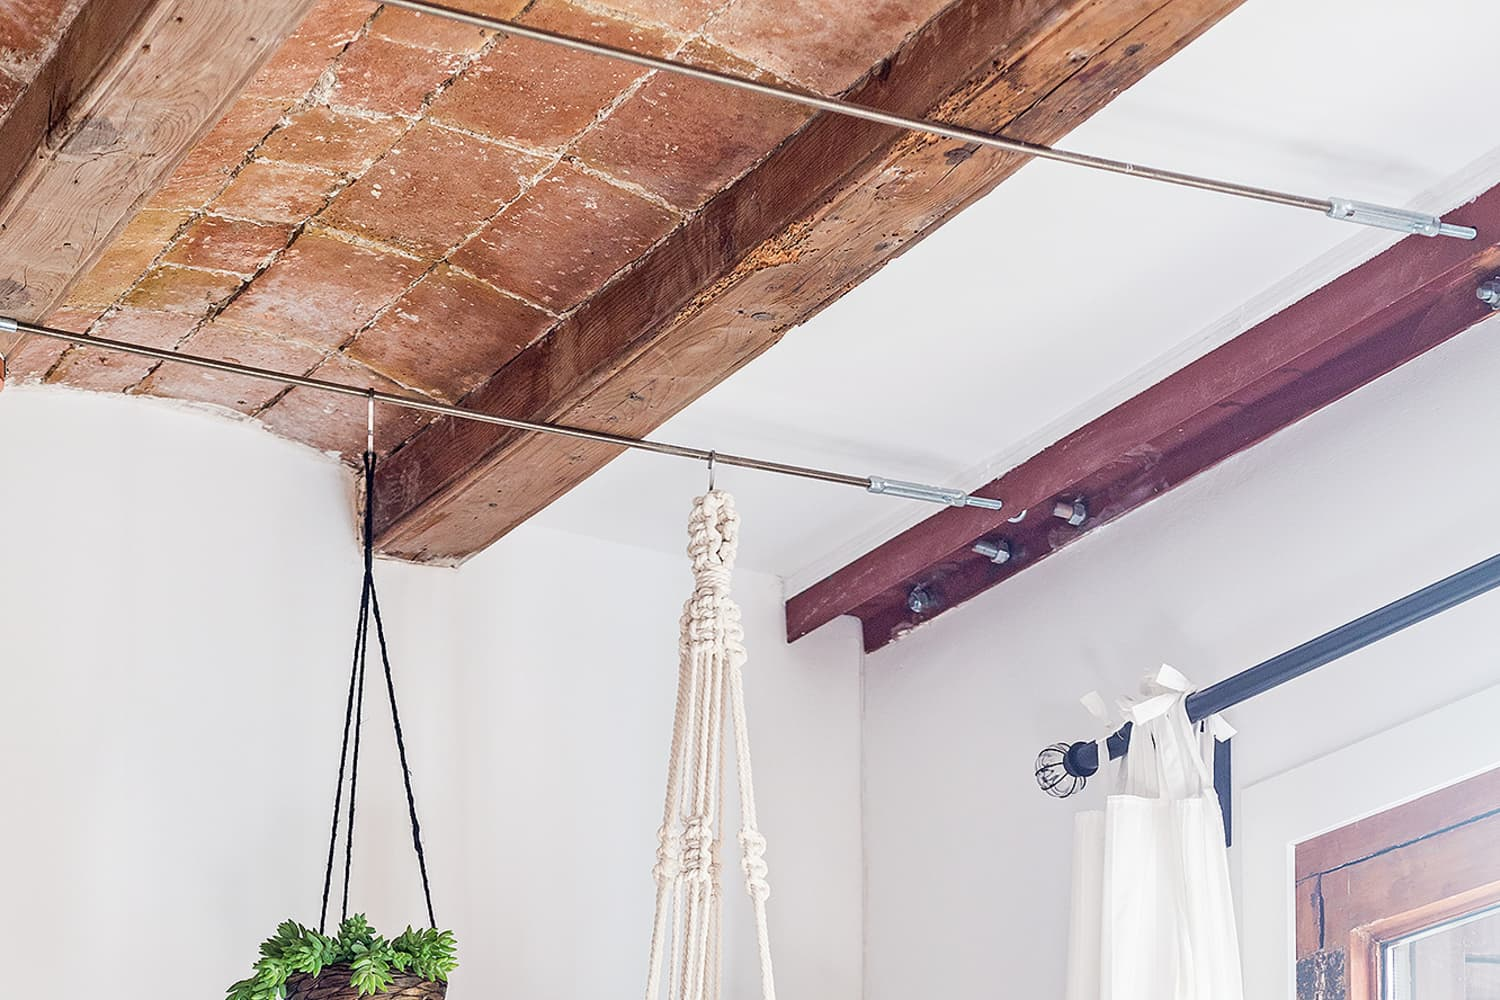 How To Hang Plants From Your Ceiling In Less Than 20 Minutes Apartment Therapy